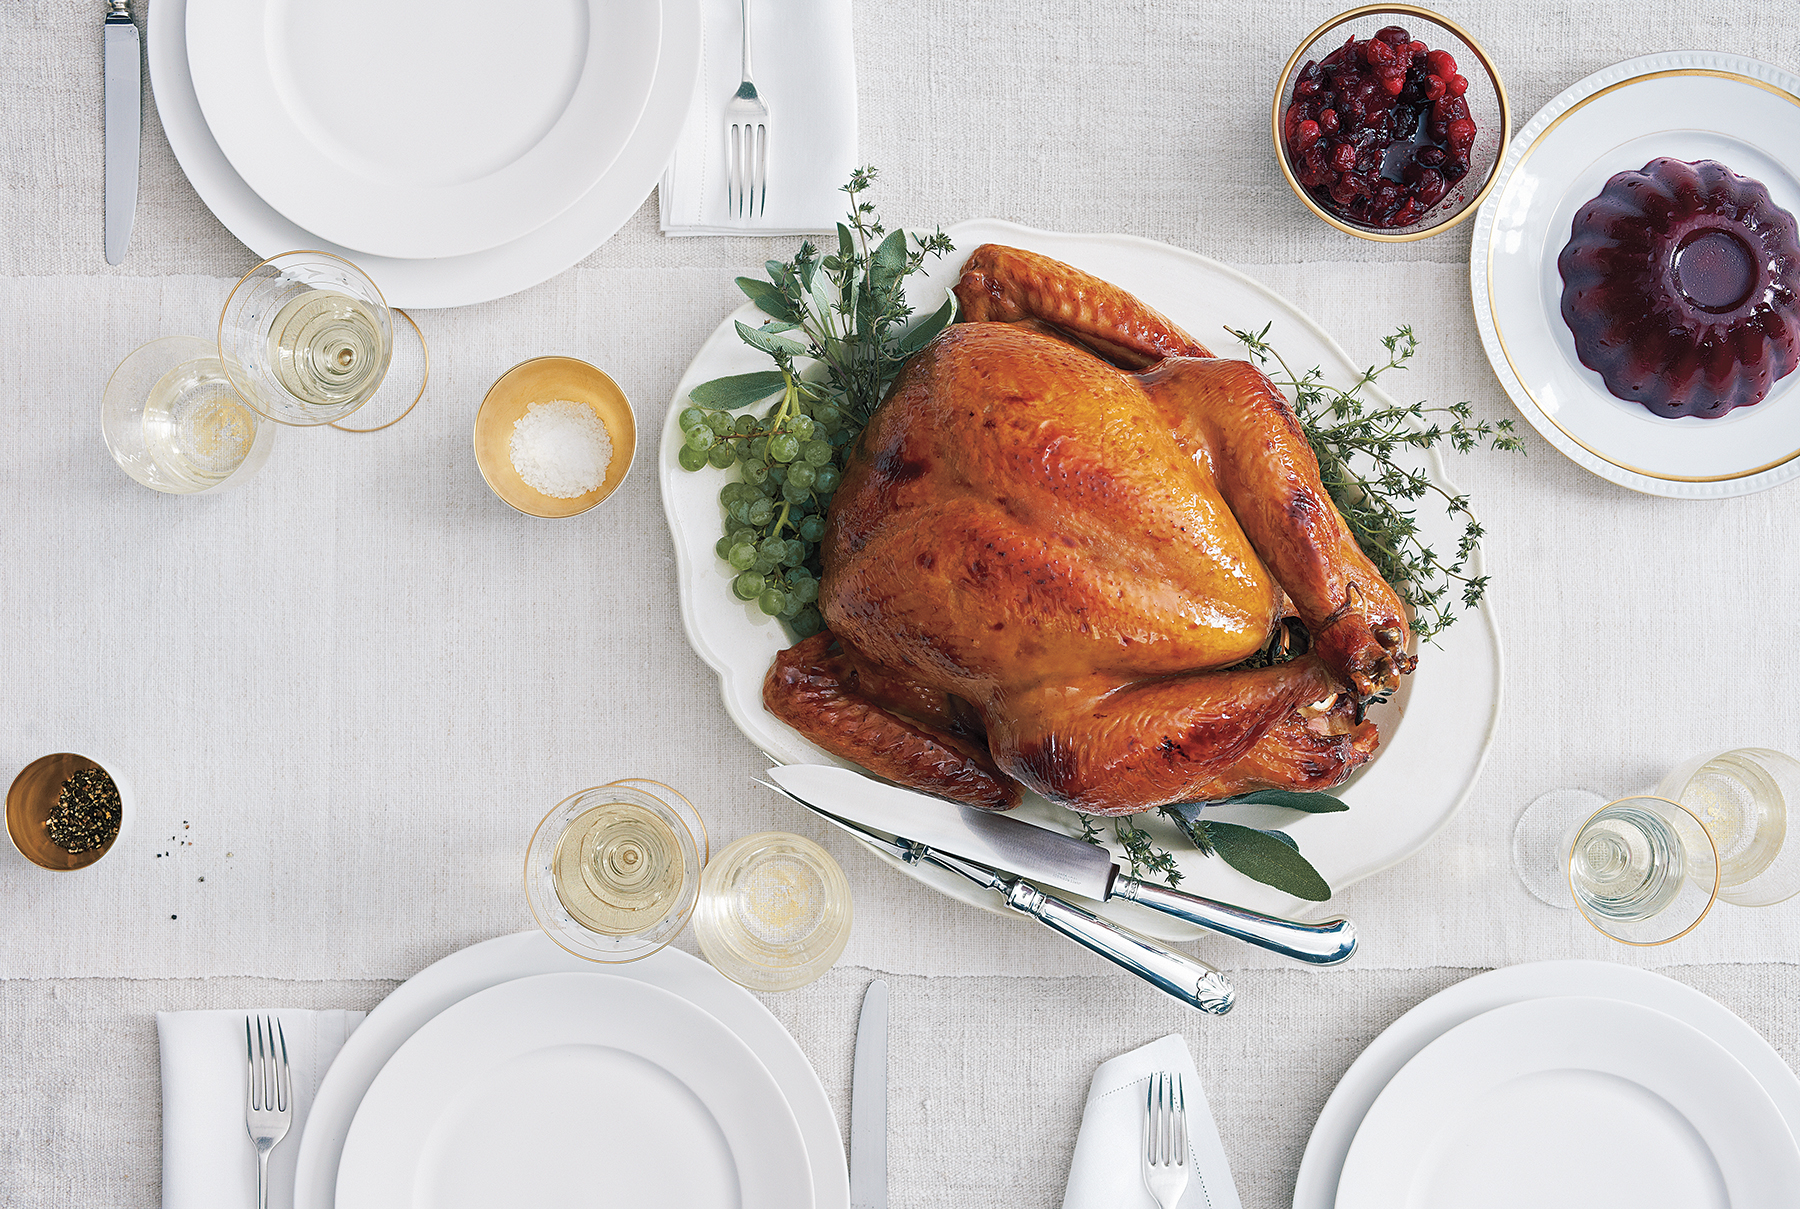 No Time to: Defrost the Turkey